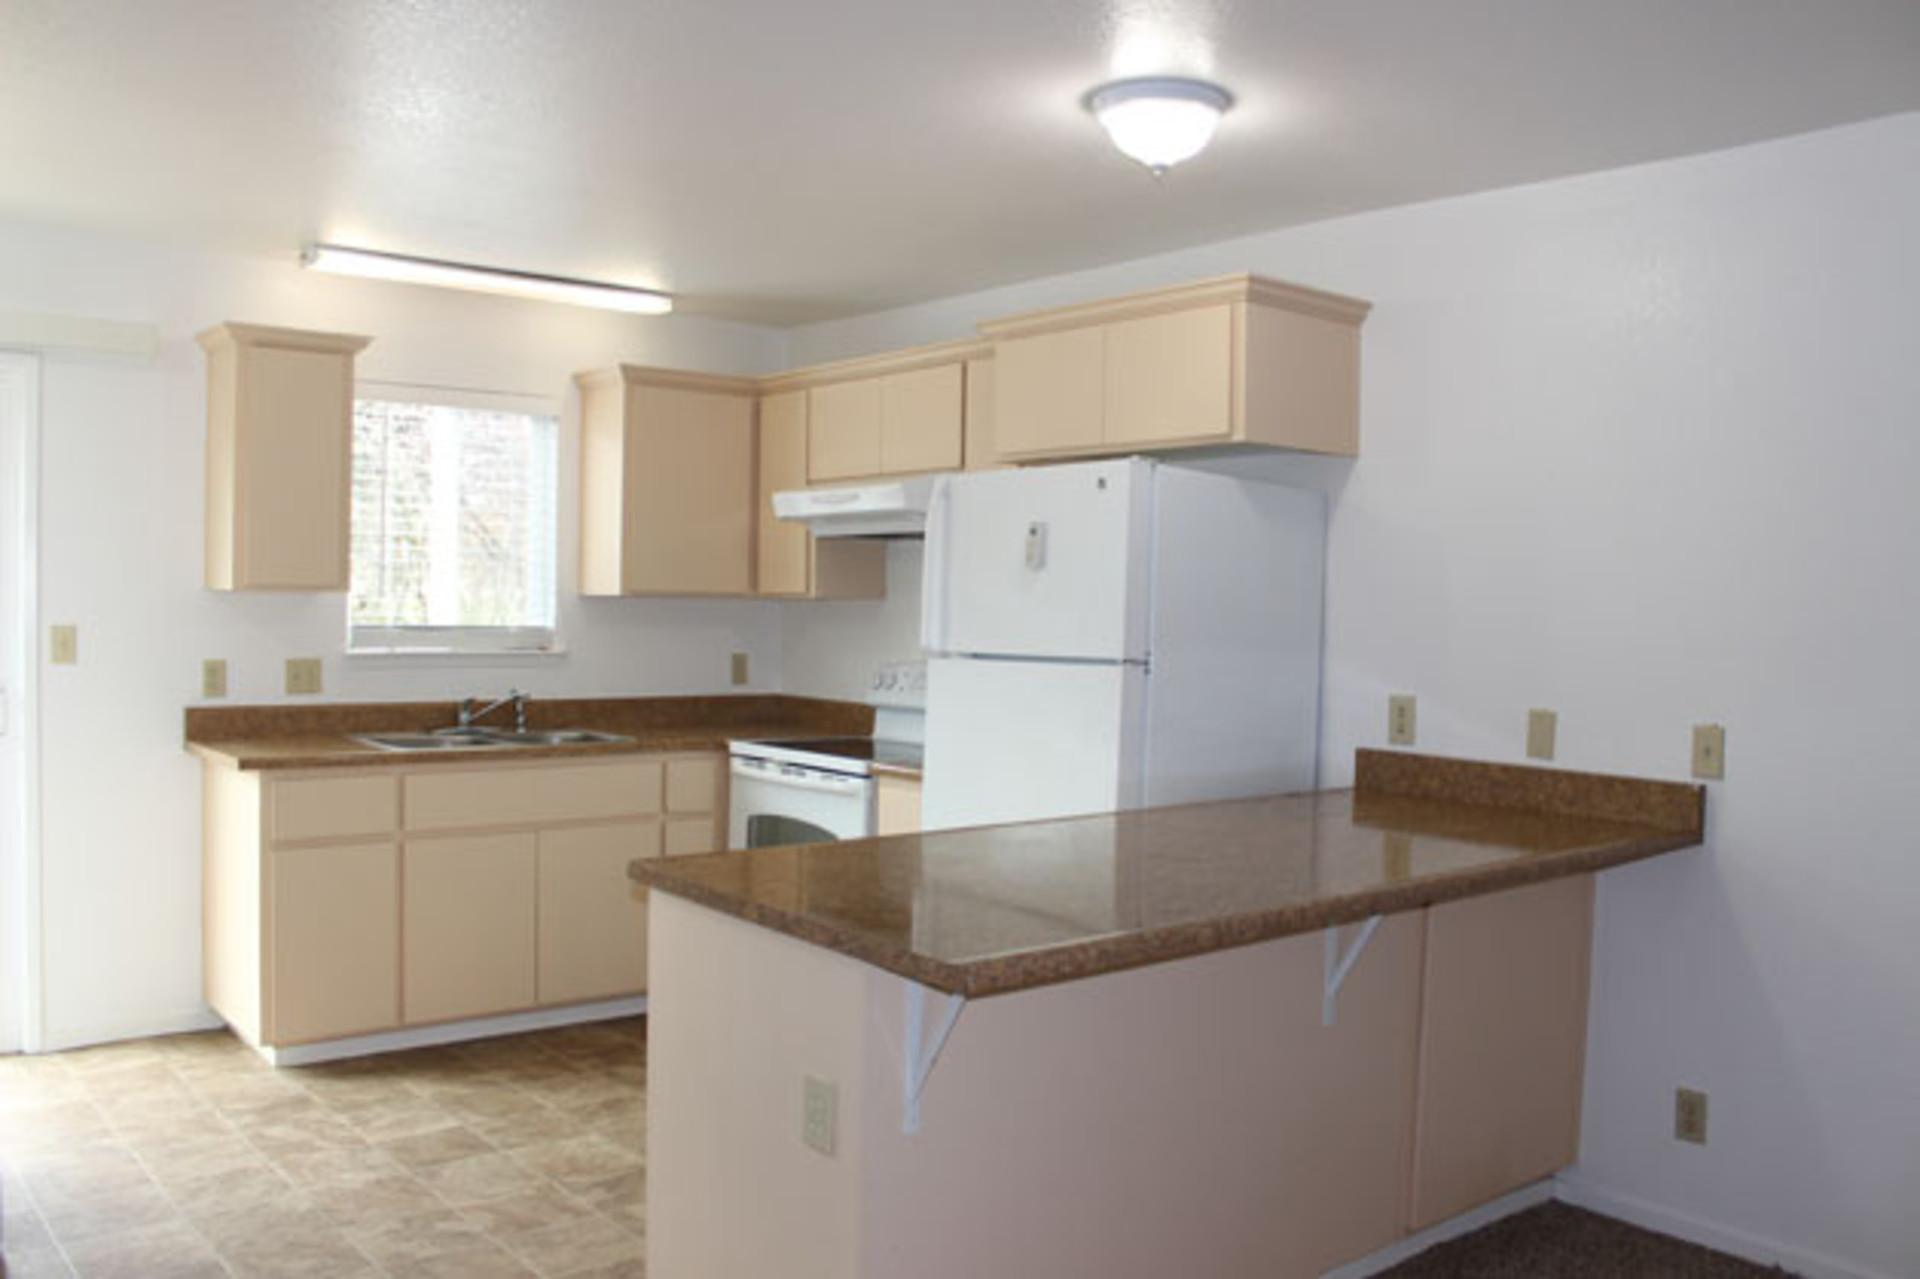 2 bedroom 1 bathroom in Colfax